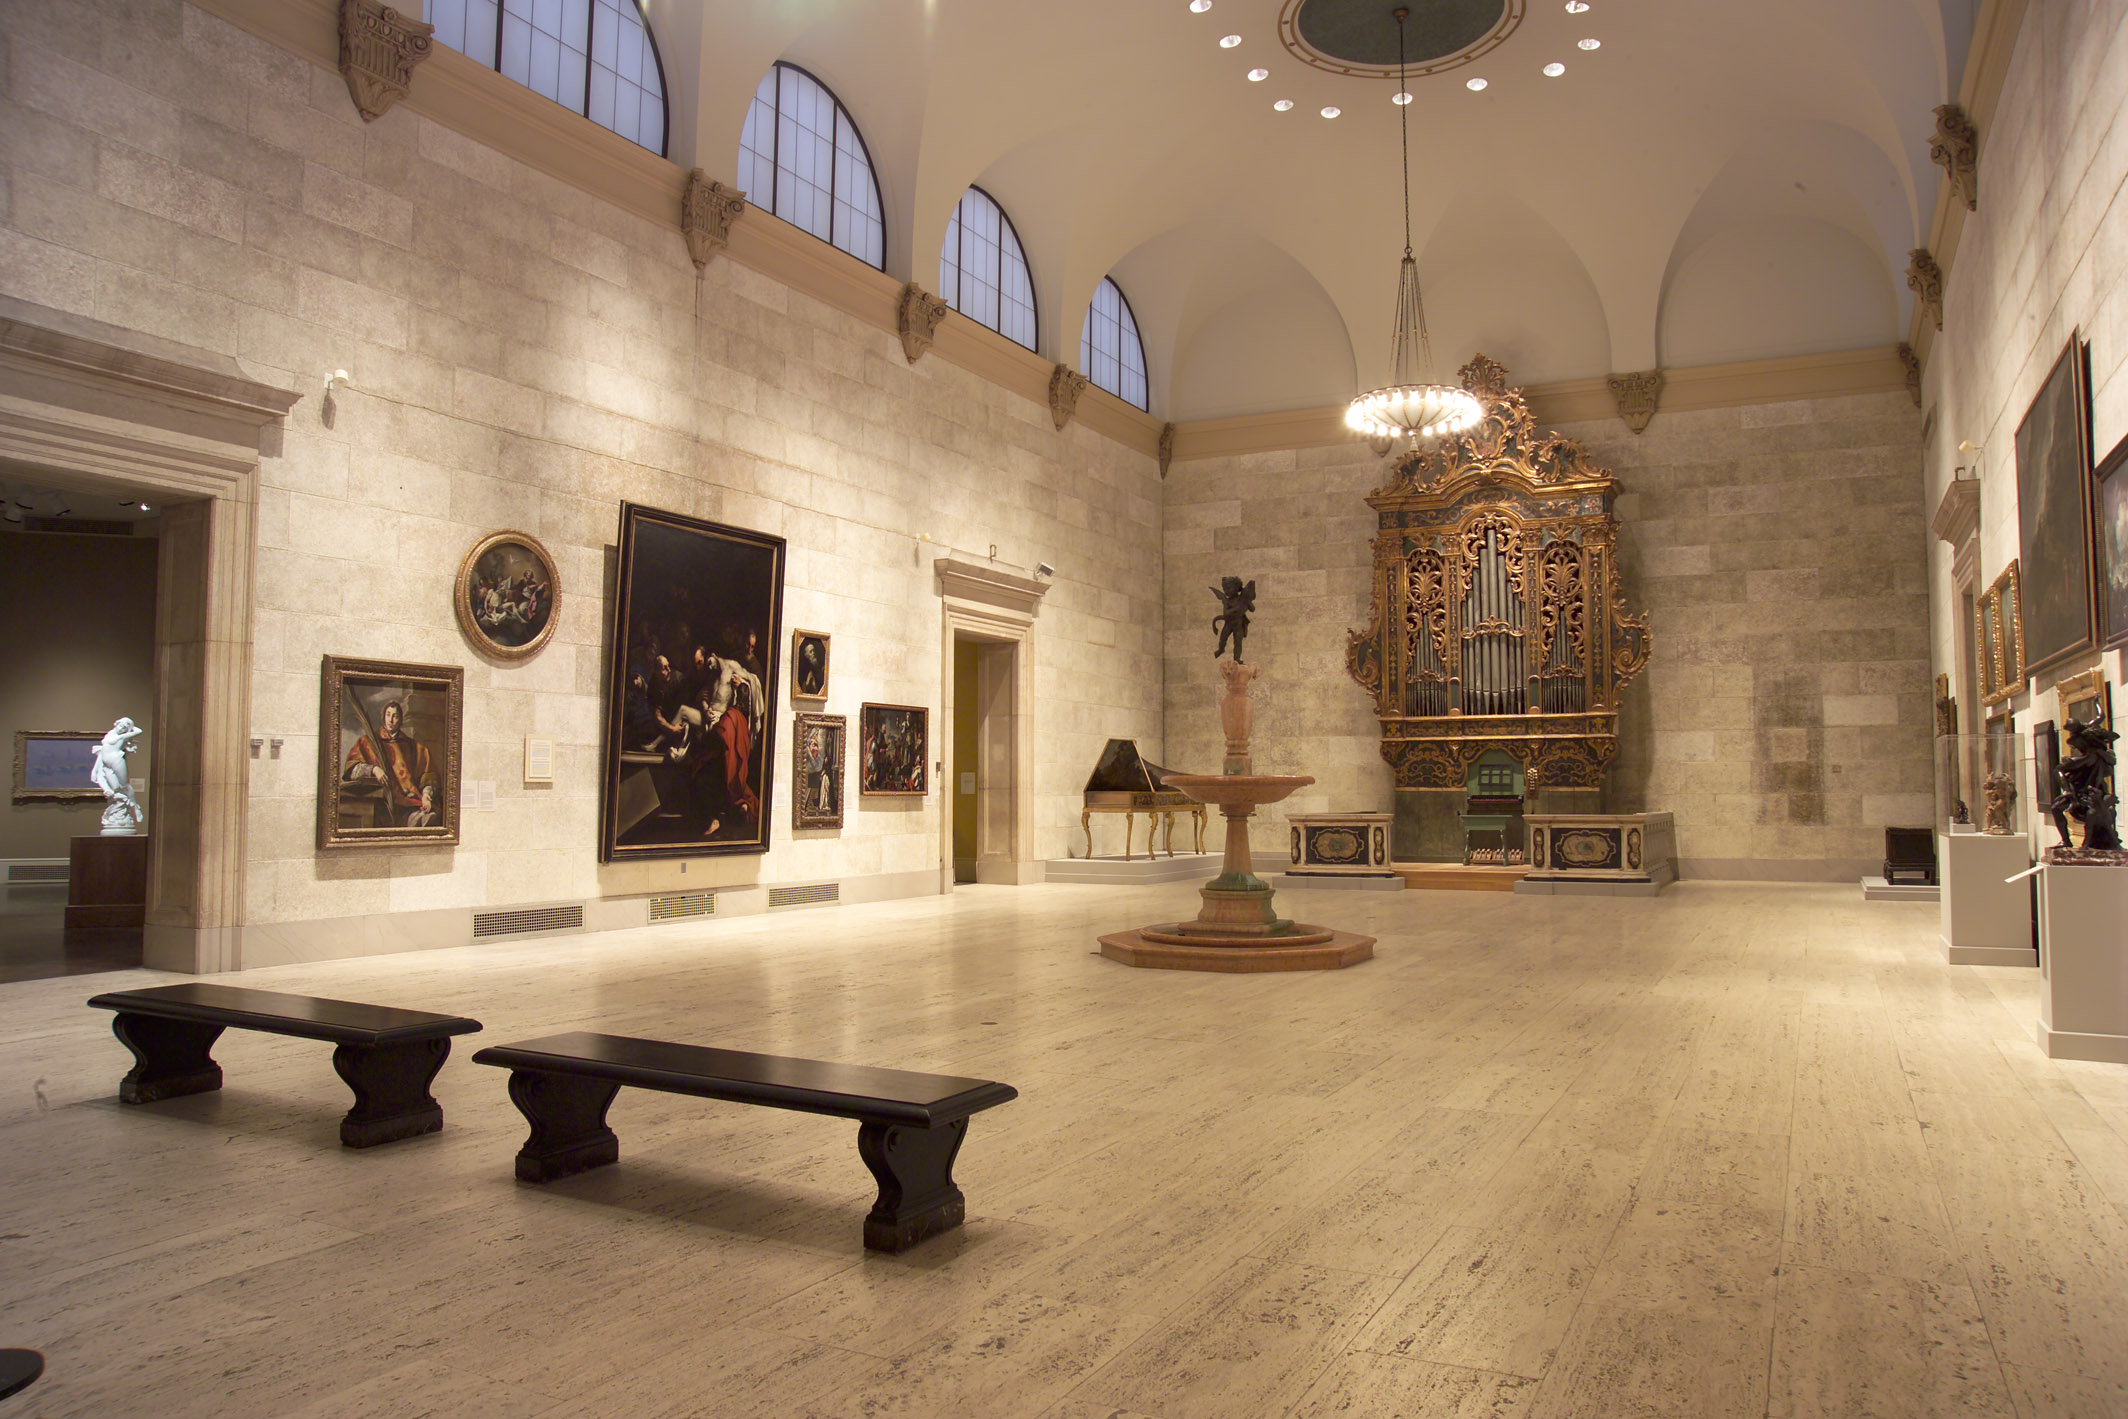 Interior view of the museum